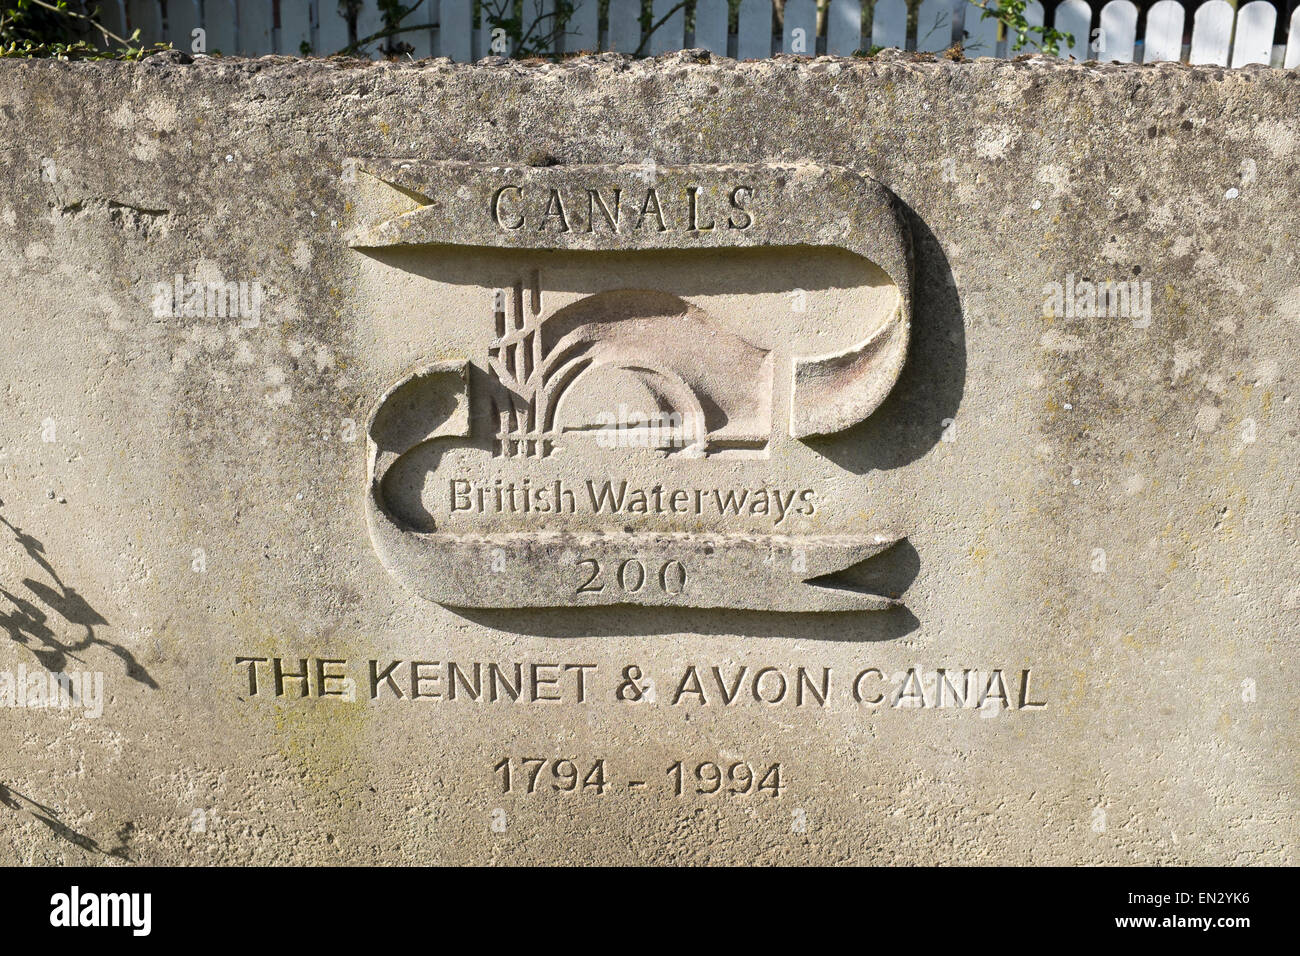 Biennial Memorial of The Kennet and Avon Canal 1794 1994 Sign at Caen Hill in Devizes - Stock Image